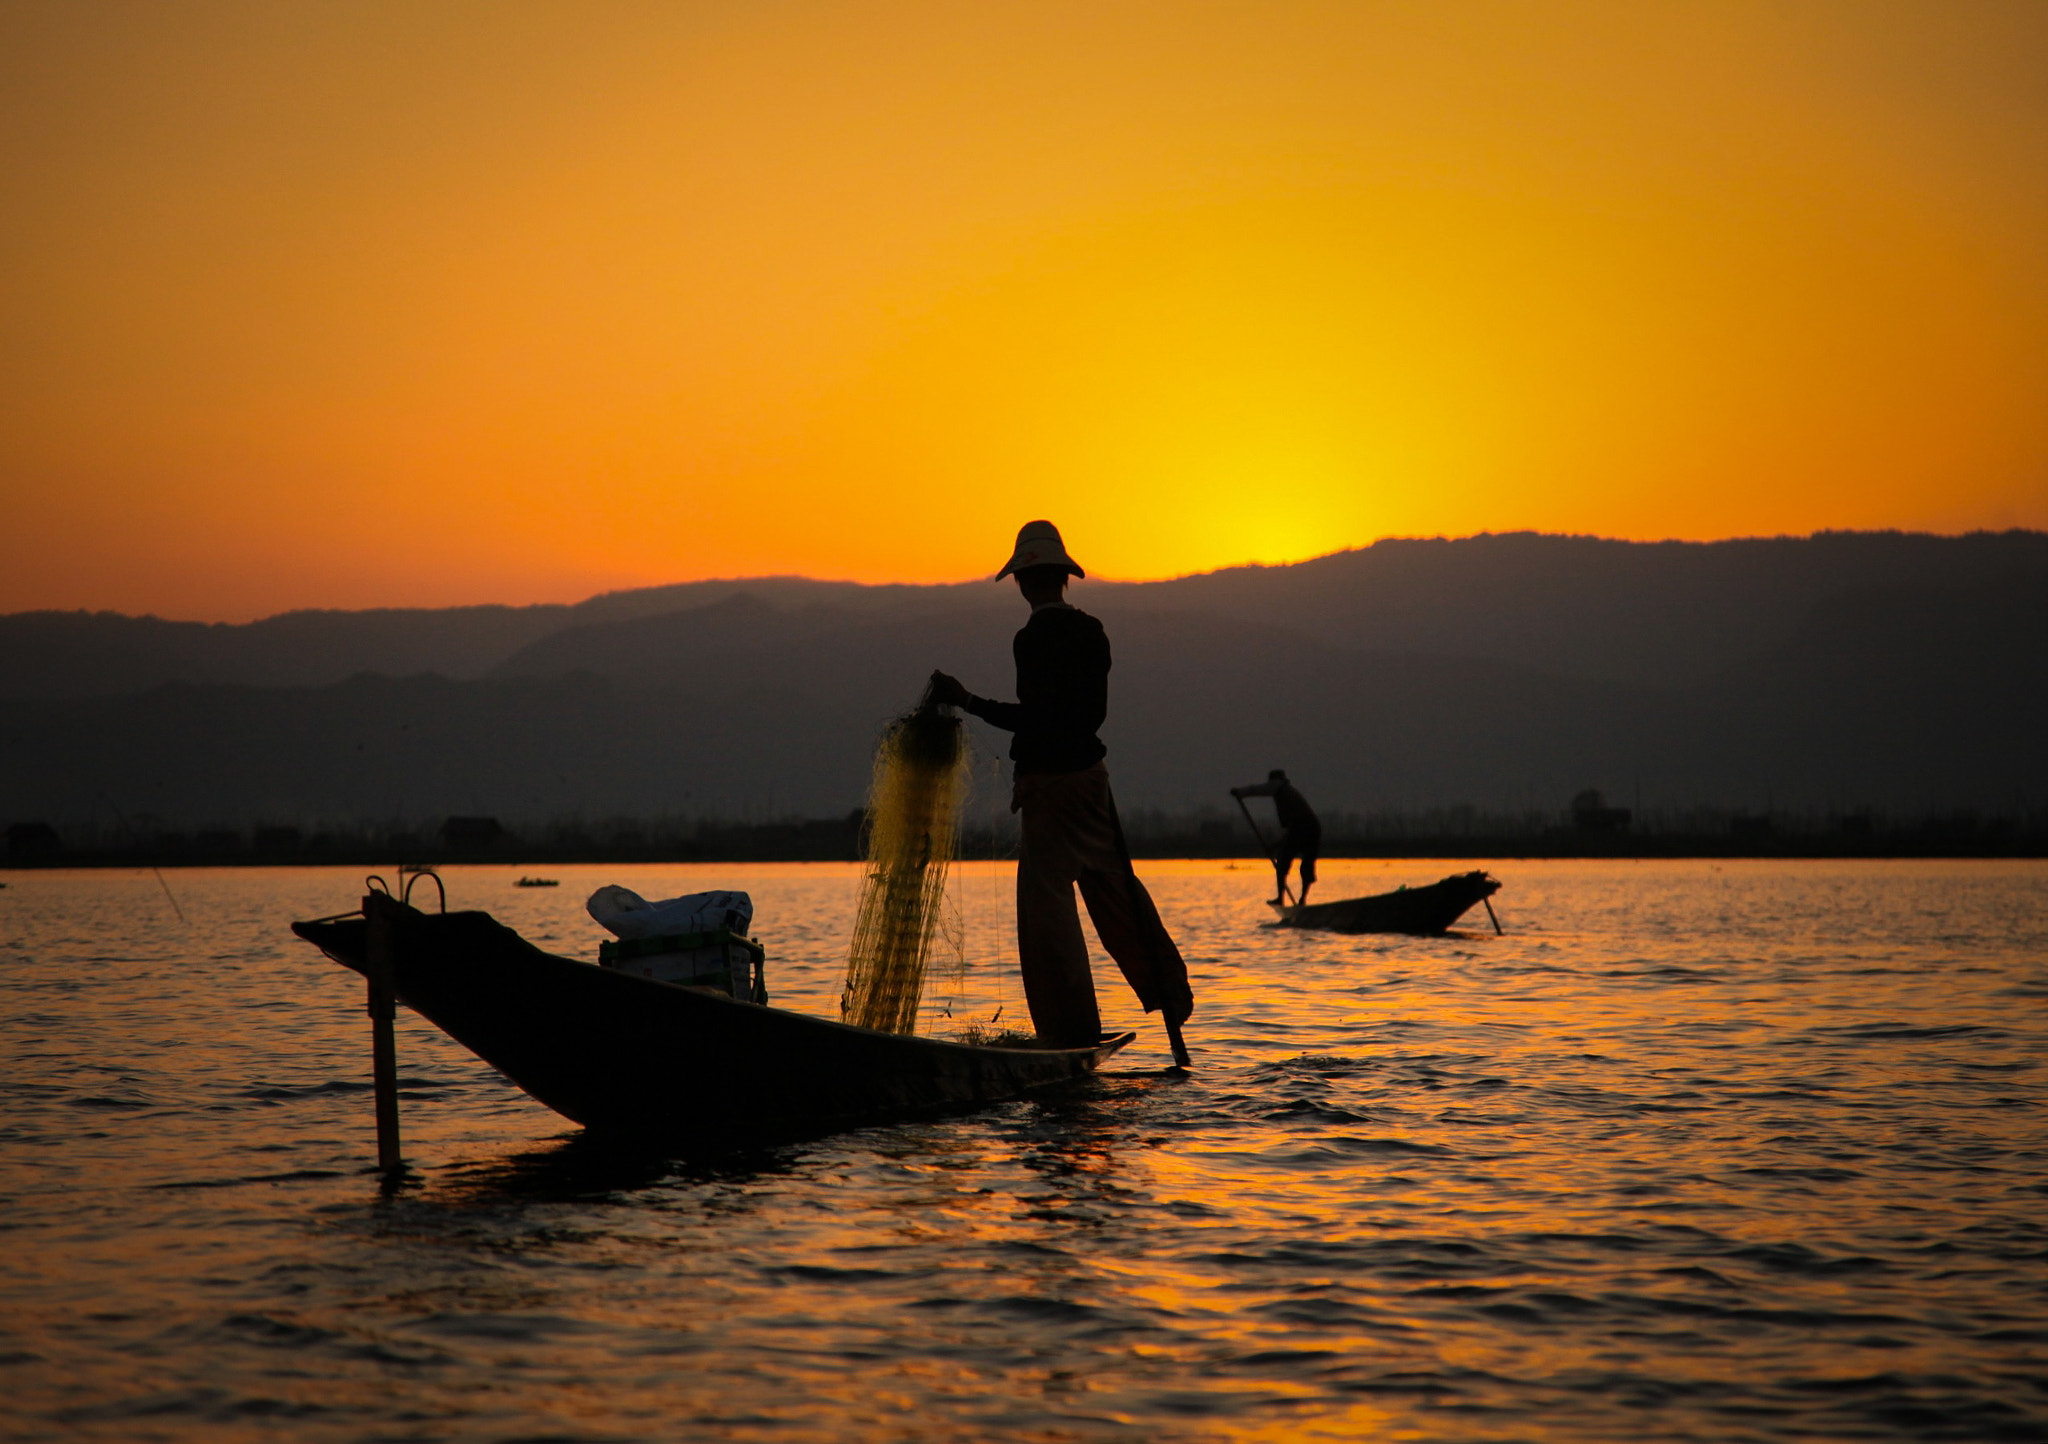 Photograph Golden Silhoutte by Mahesh Krishnamurthy on 500px